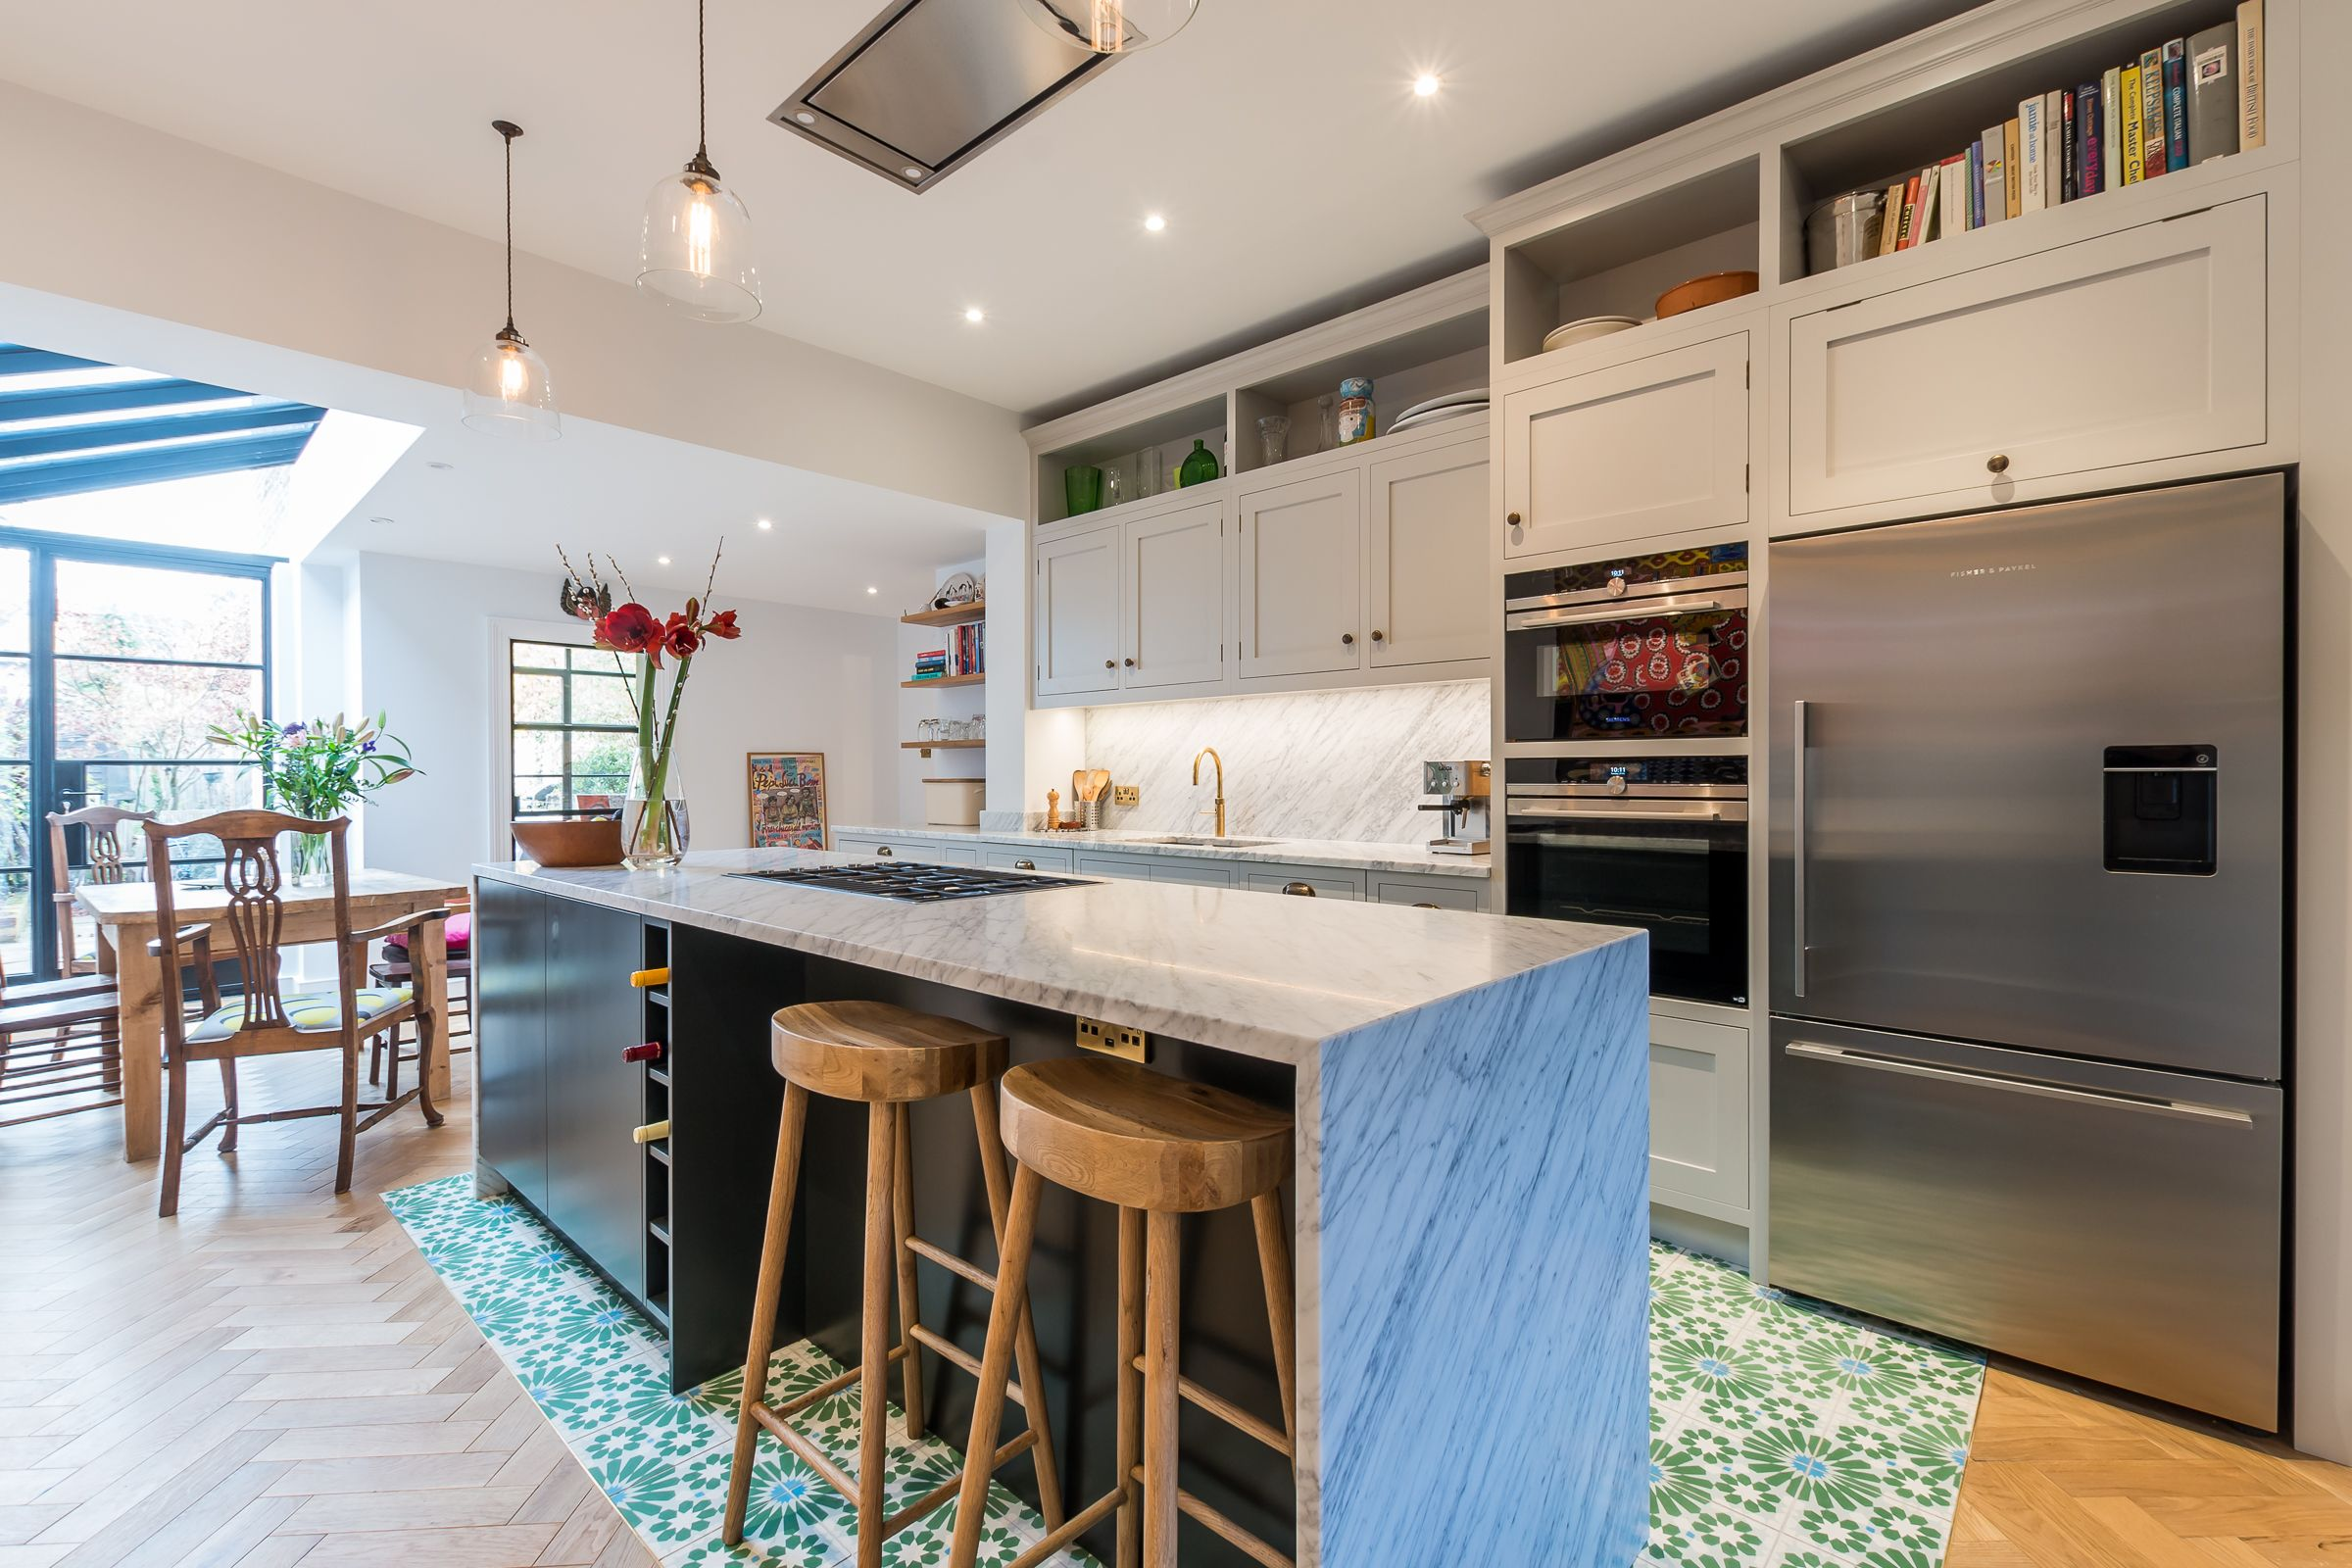 kitchen ideas and inspiration quirky kitchen kitchen london property on kitchen ideas quirky id=53549